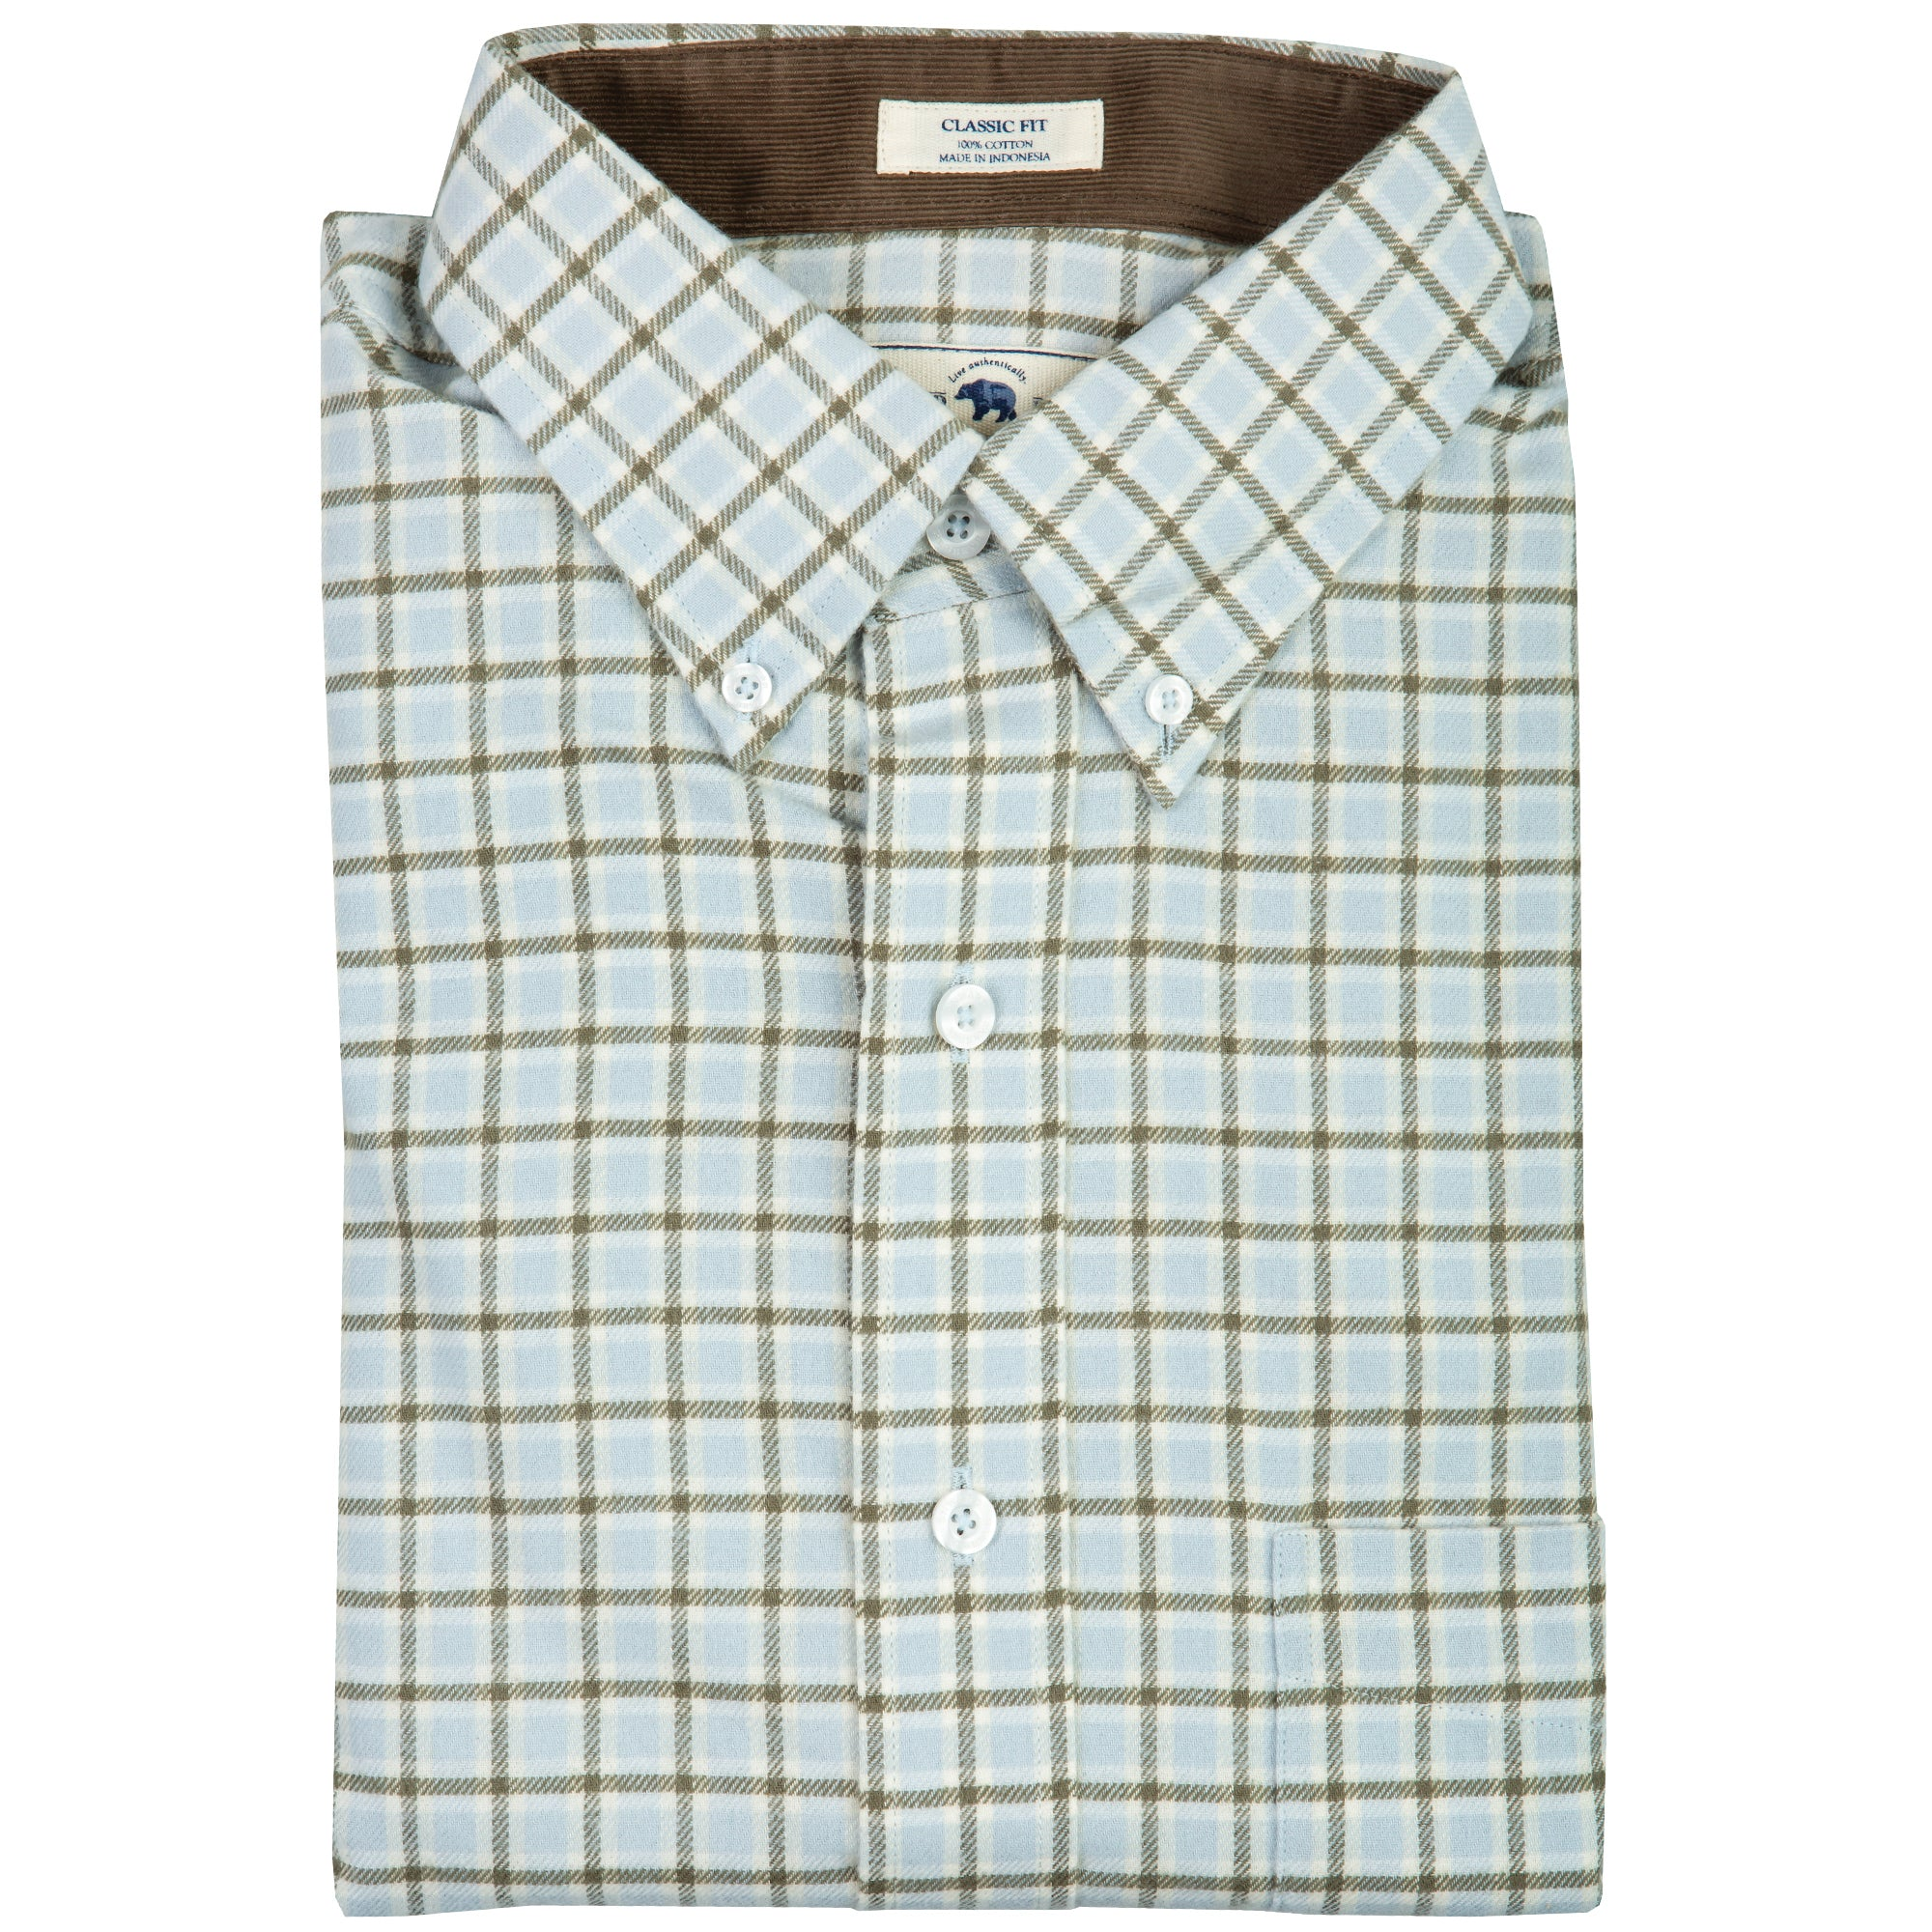 Bluff Classic Fit Flannel